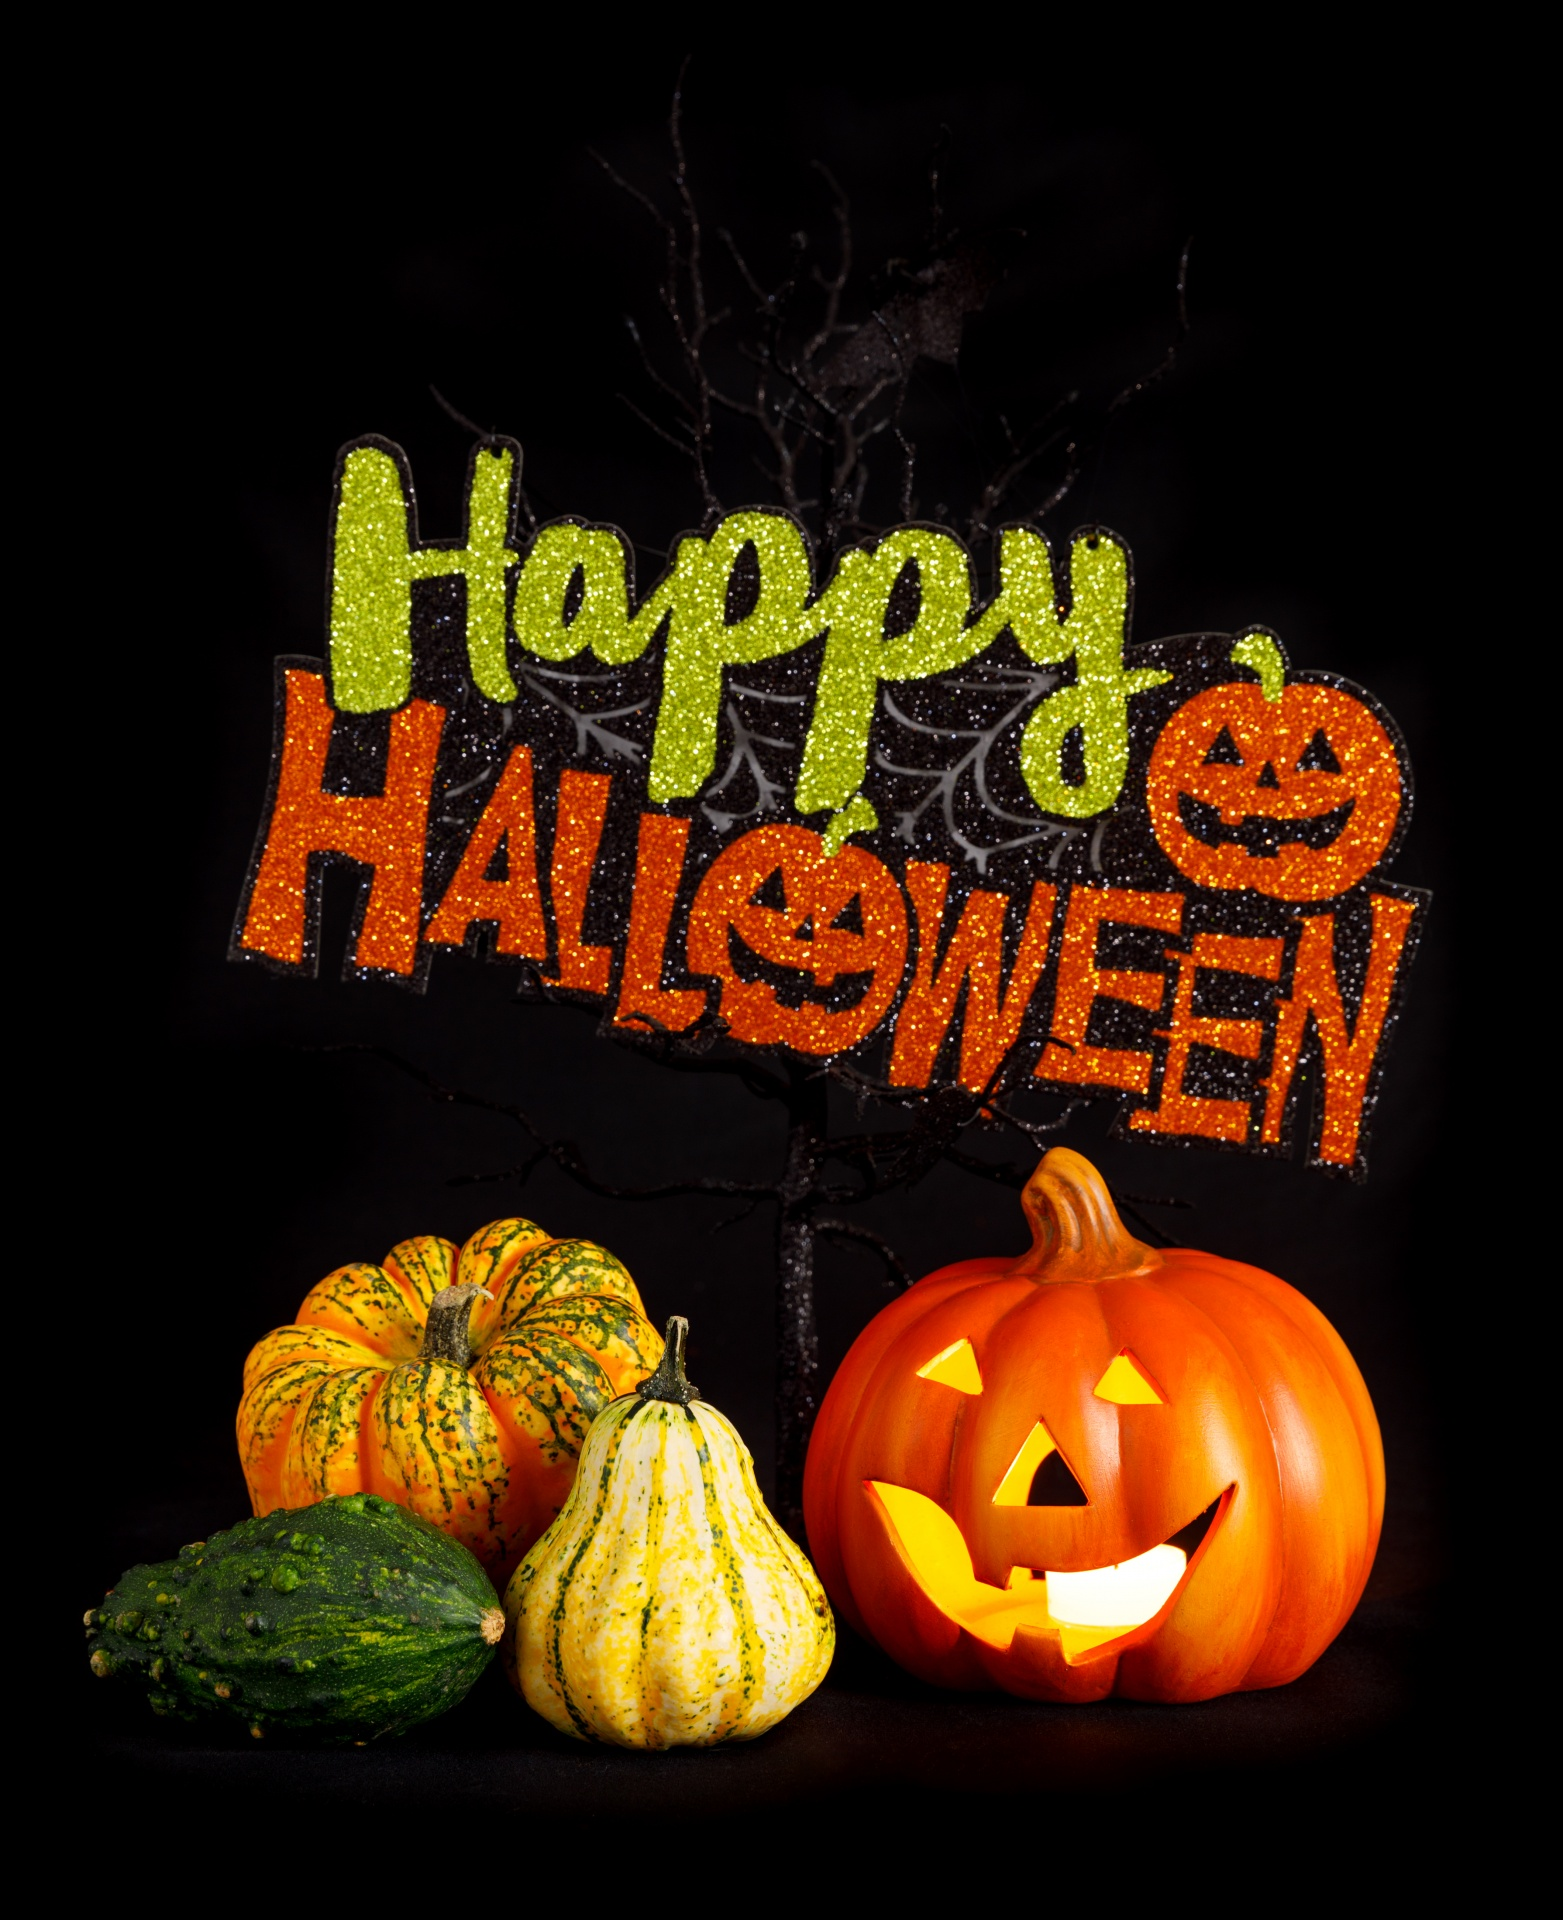 7 Happy Halloween Images to Post on Social Media 7 Happy ...